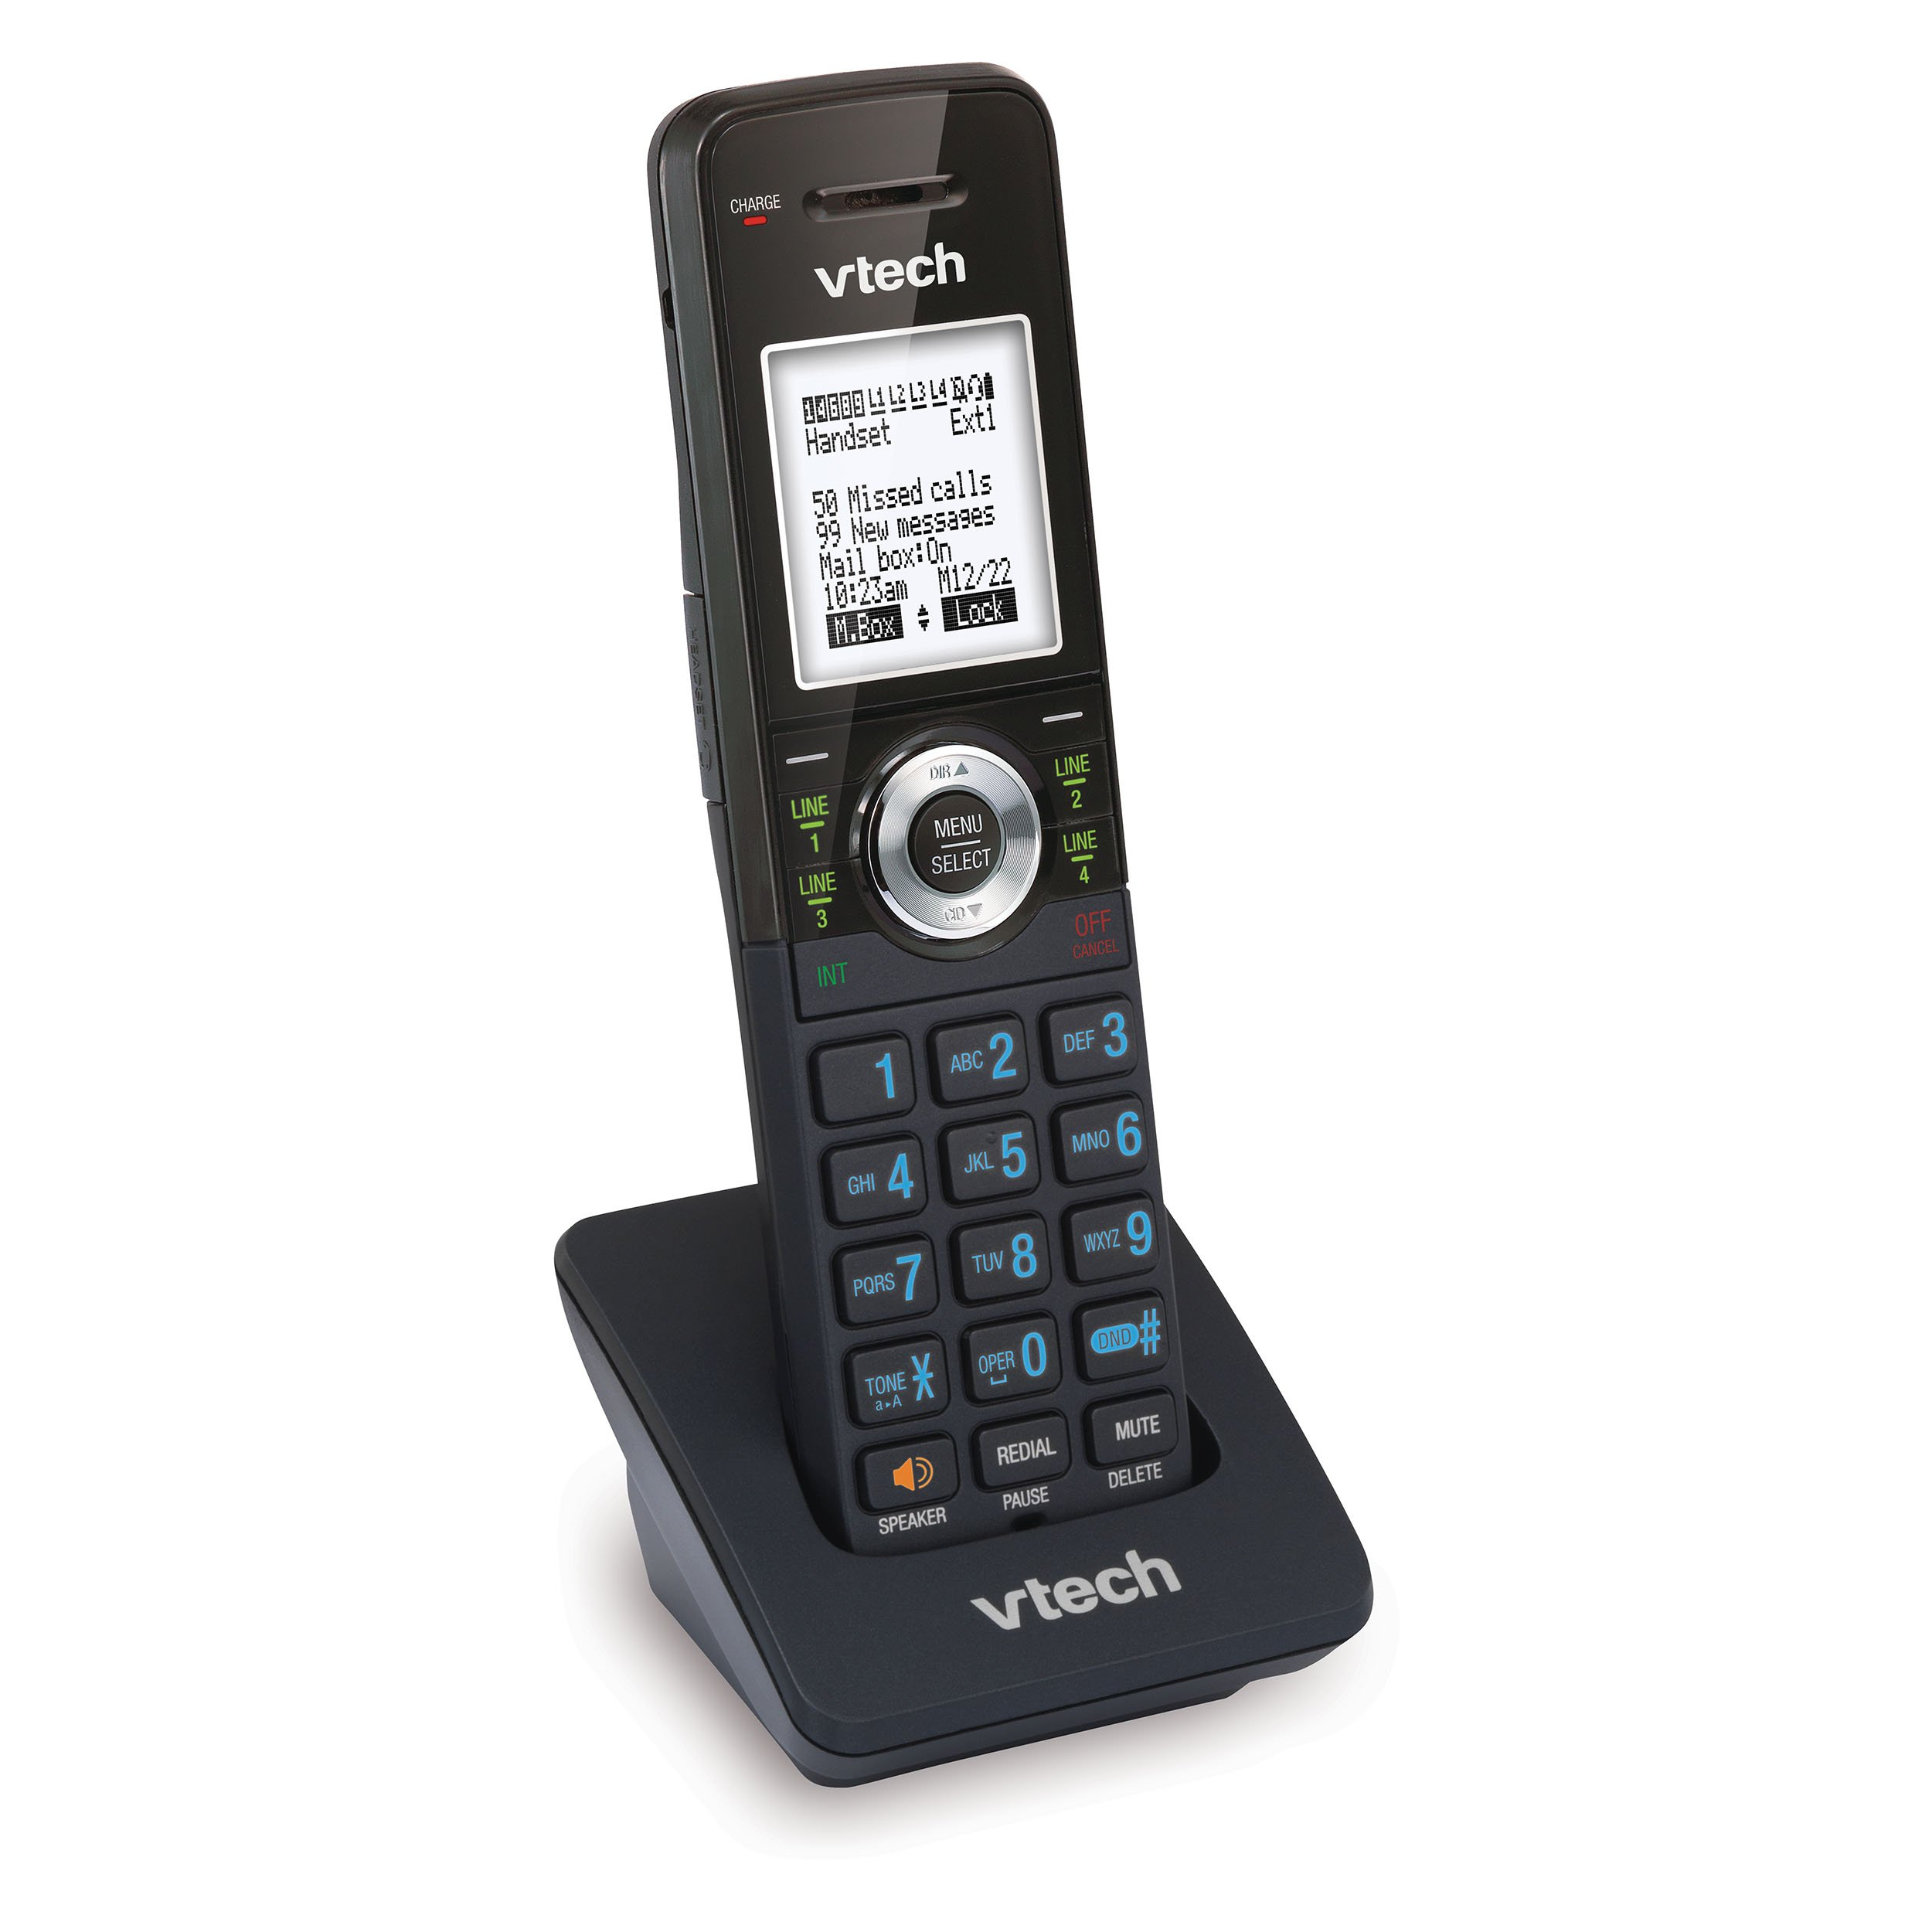 VTech AM18047 Accessory Handset for VTech 4-Line Expandable Small Business Office Phone System